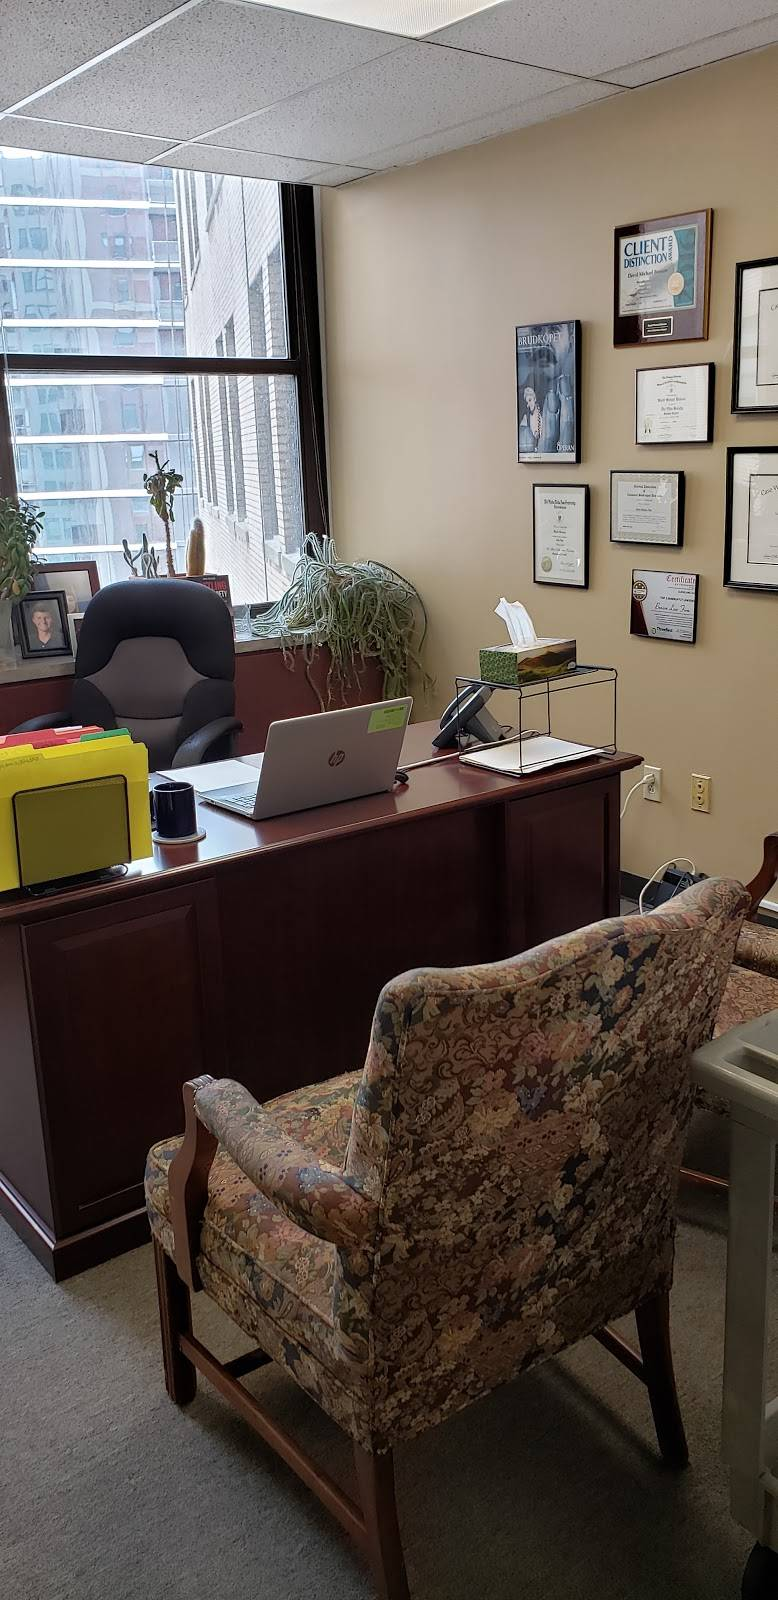 Benson Law Firm - lawyer  | Photo 1 of 3 | Address: 3473 Fairmount Blvd 2nd floor, Cleveland Heights, OH 44118, USA | Phone: (216) 279-3647